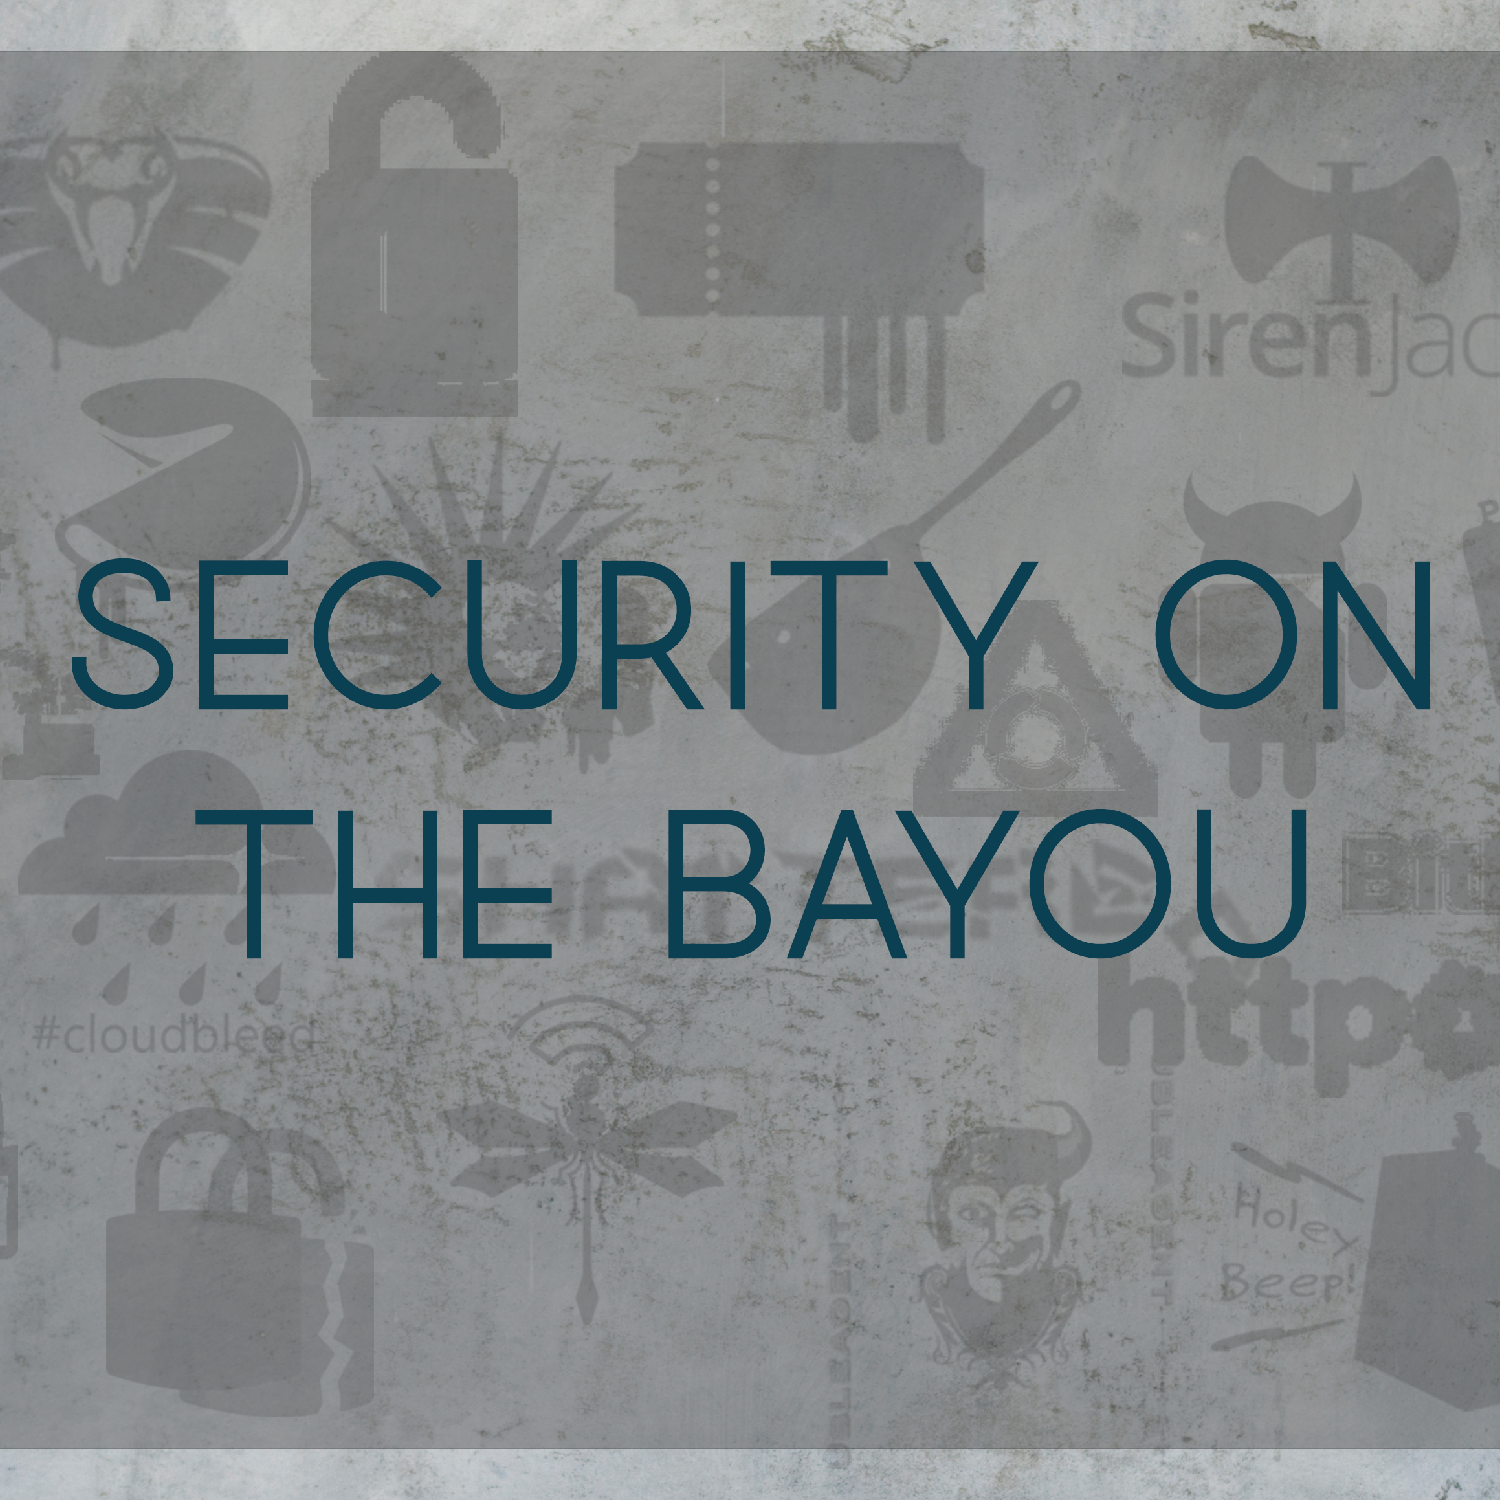 Security on The Bayou